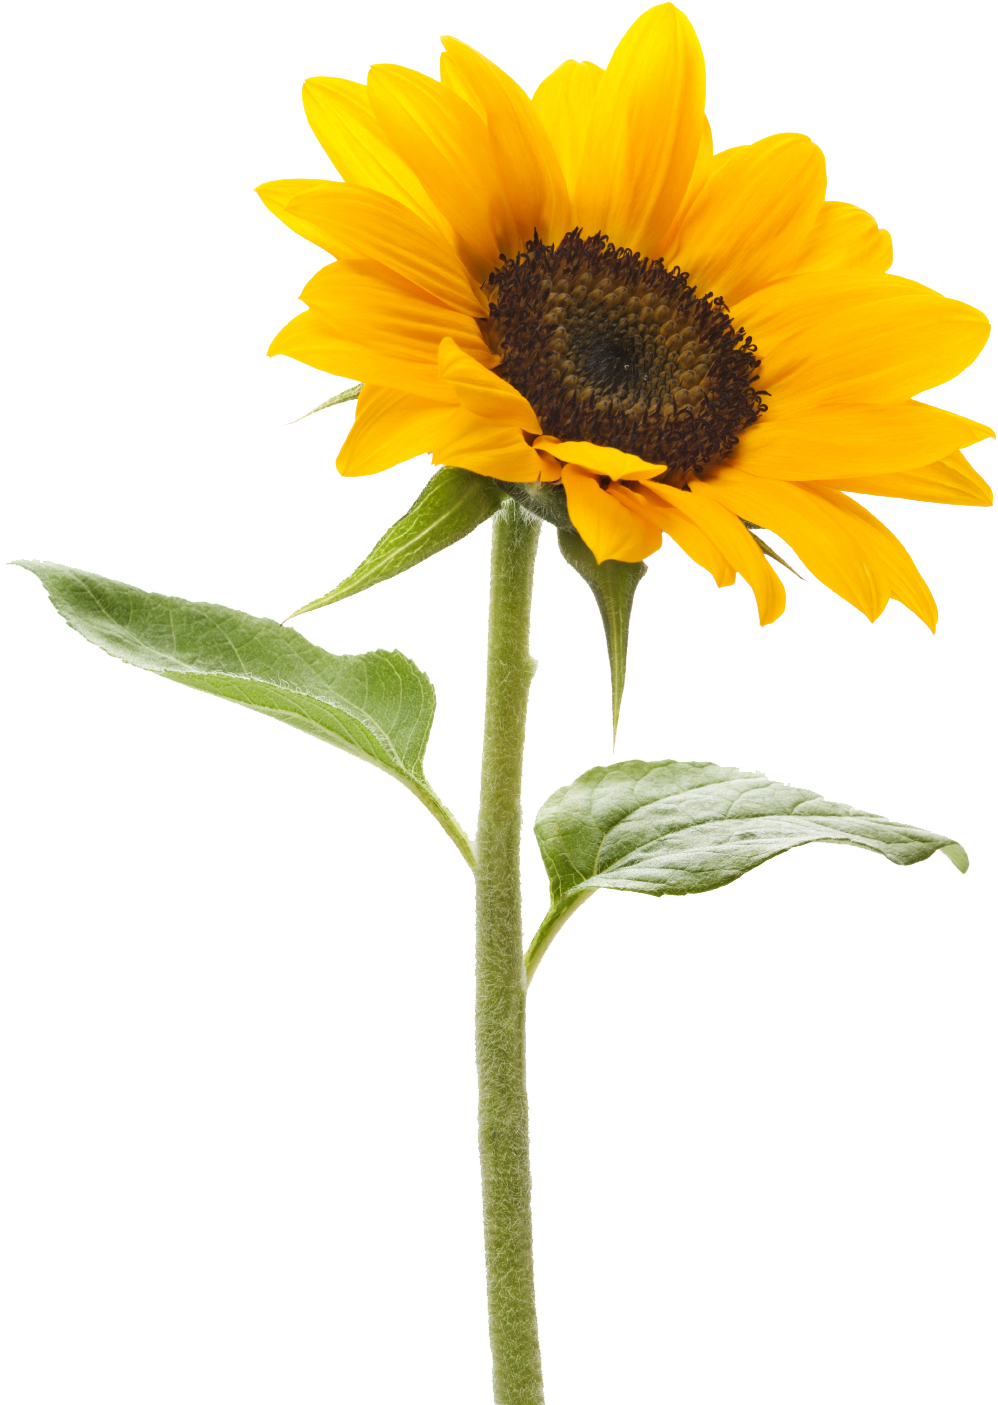 Royalty Free Sunflower Png Images Free Download Pngmart ...